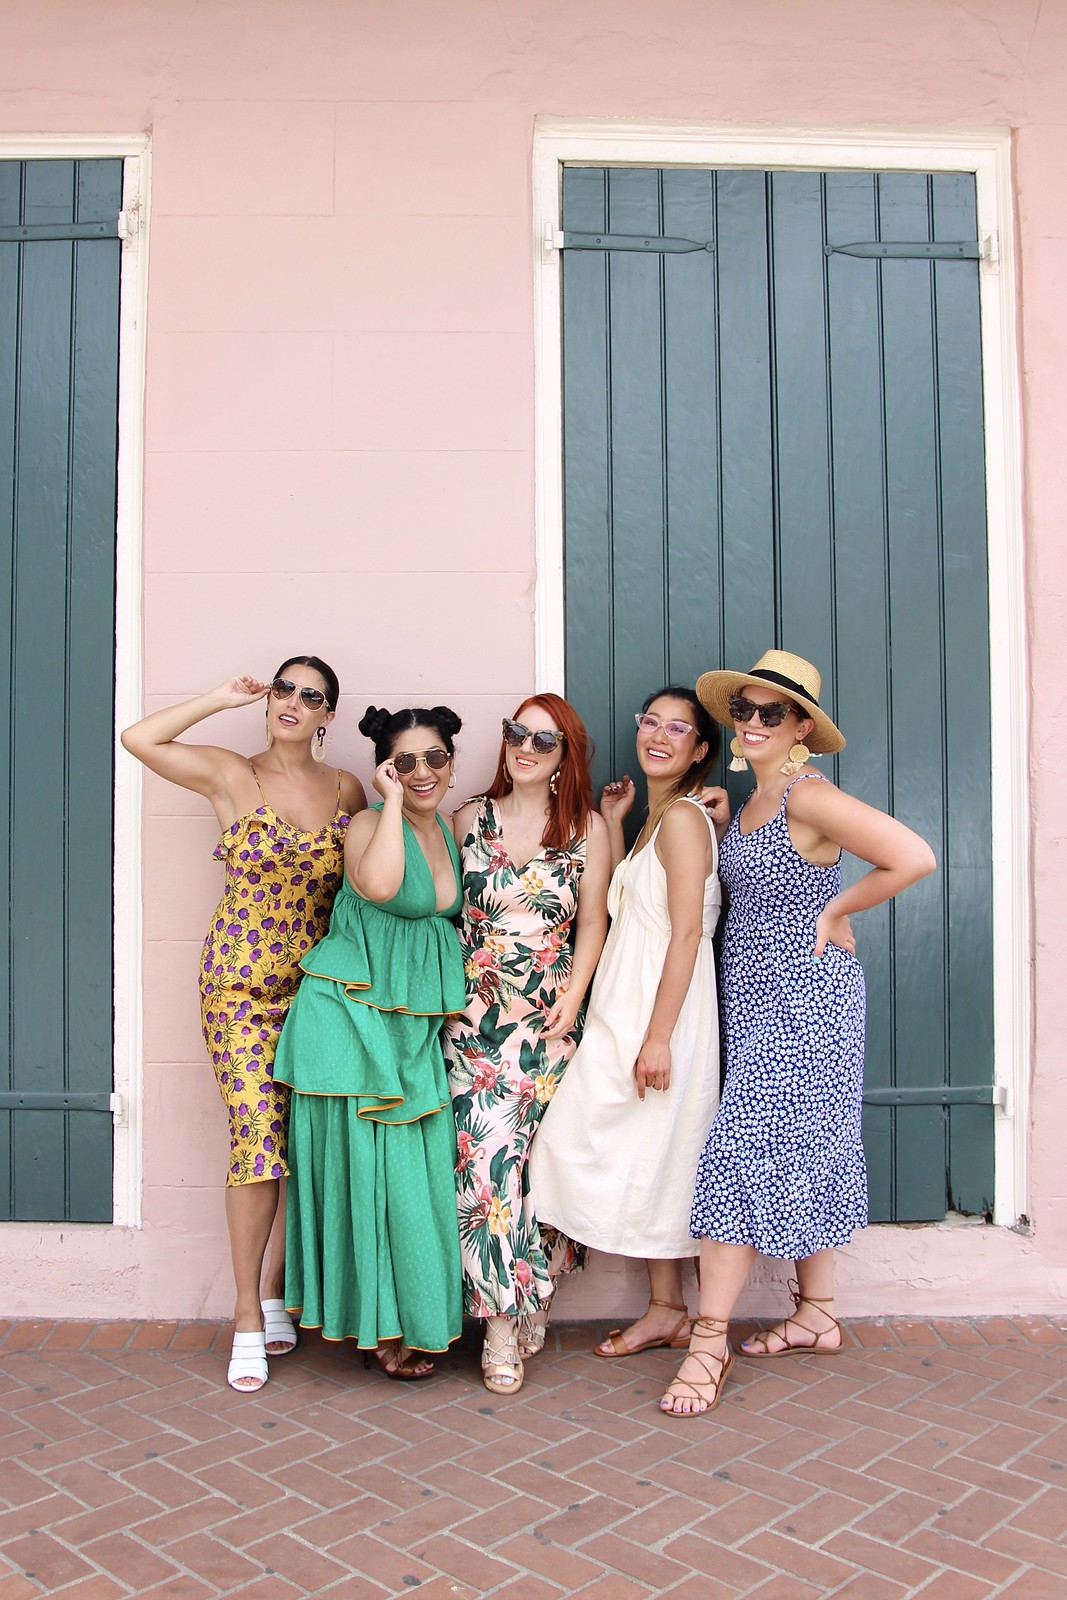 New Orleans Girls Trip | How to Spend 48 Hours in New Orleans in the Summer | New Orleans Travel Guide | What to do in New Orleans | 2 Days in New Orleans | Best Things to do in New Orleans | First Timer's Guide to NOLA | NOLA Travel Guide | 2 Day Itinerary for New Orleans